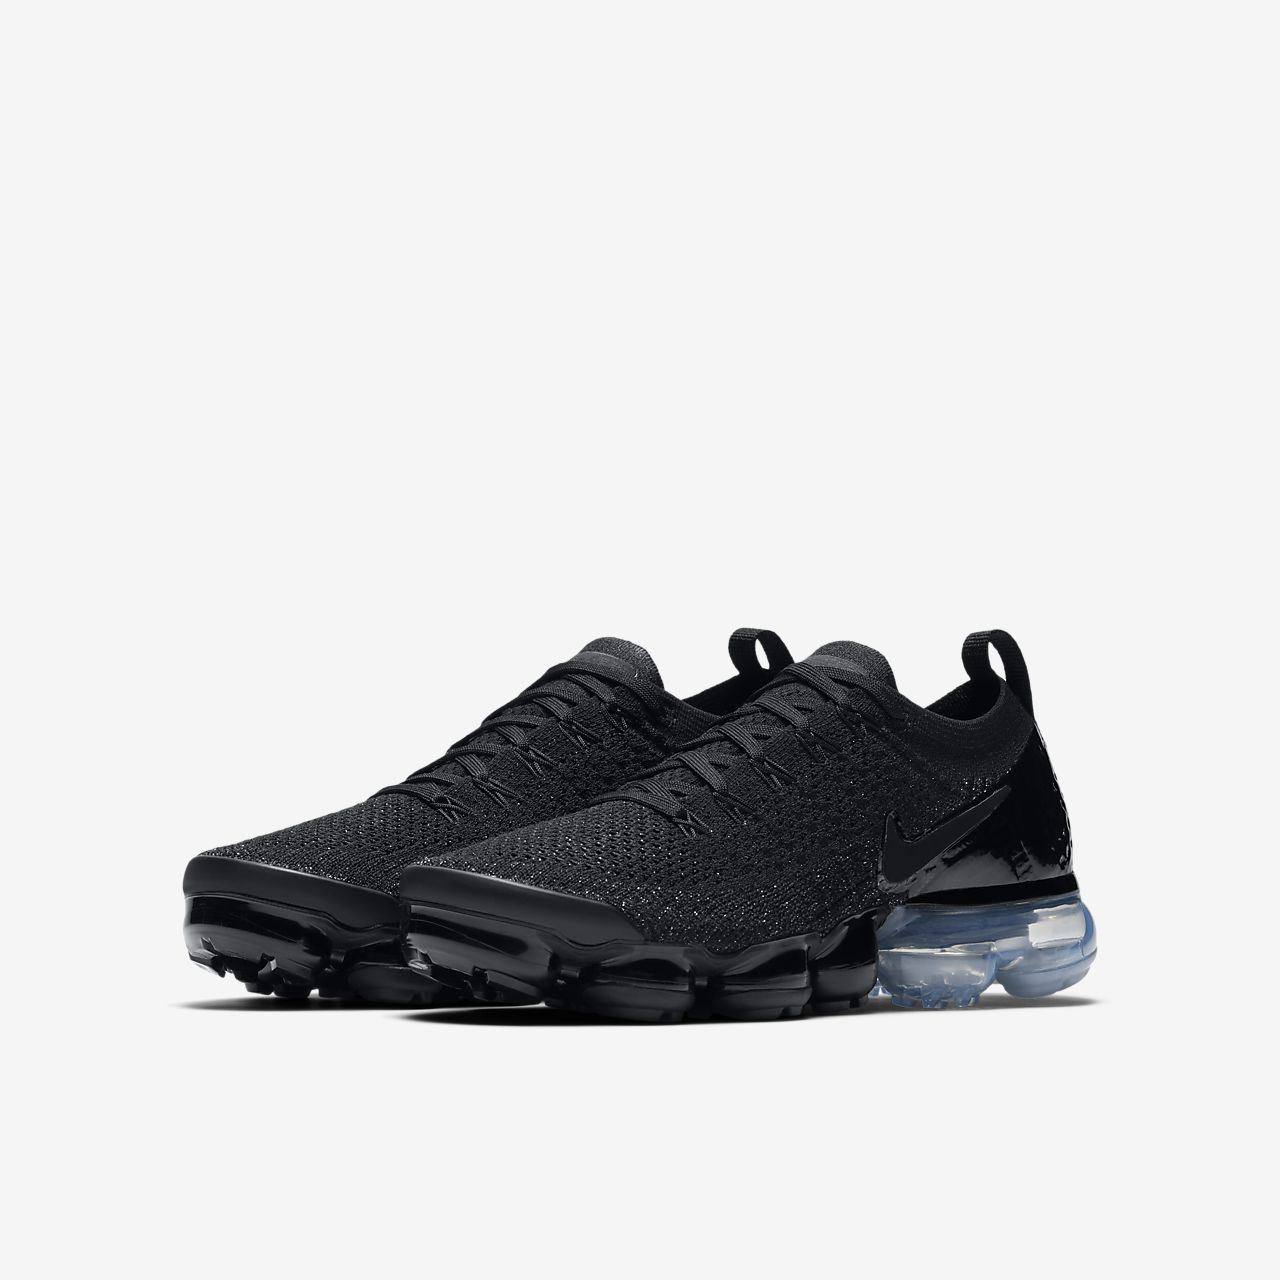 pretty nice 8e57d 9abe2 ireland nike air vapormax flyknit sort 01 cf4df 4e533